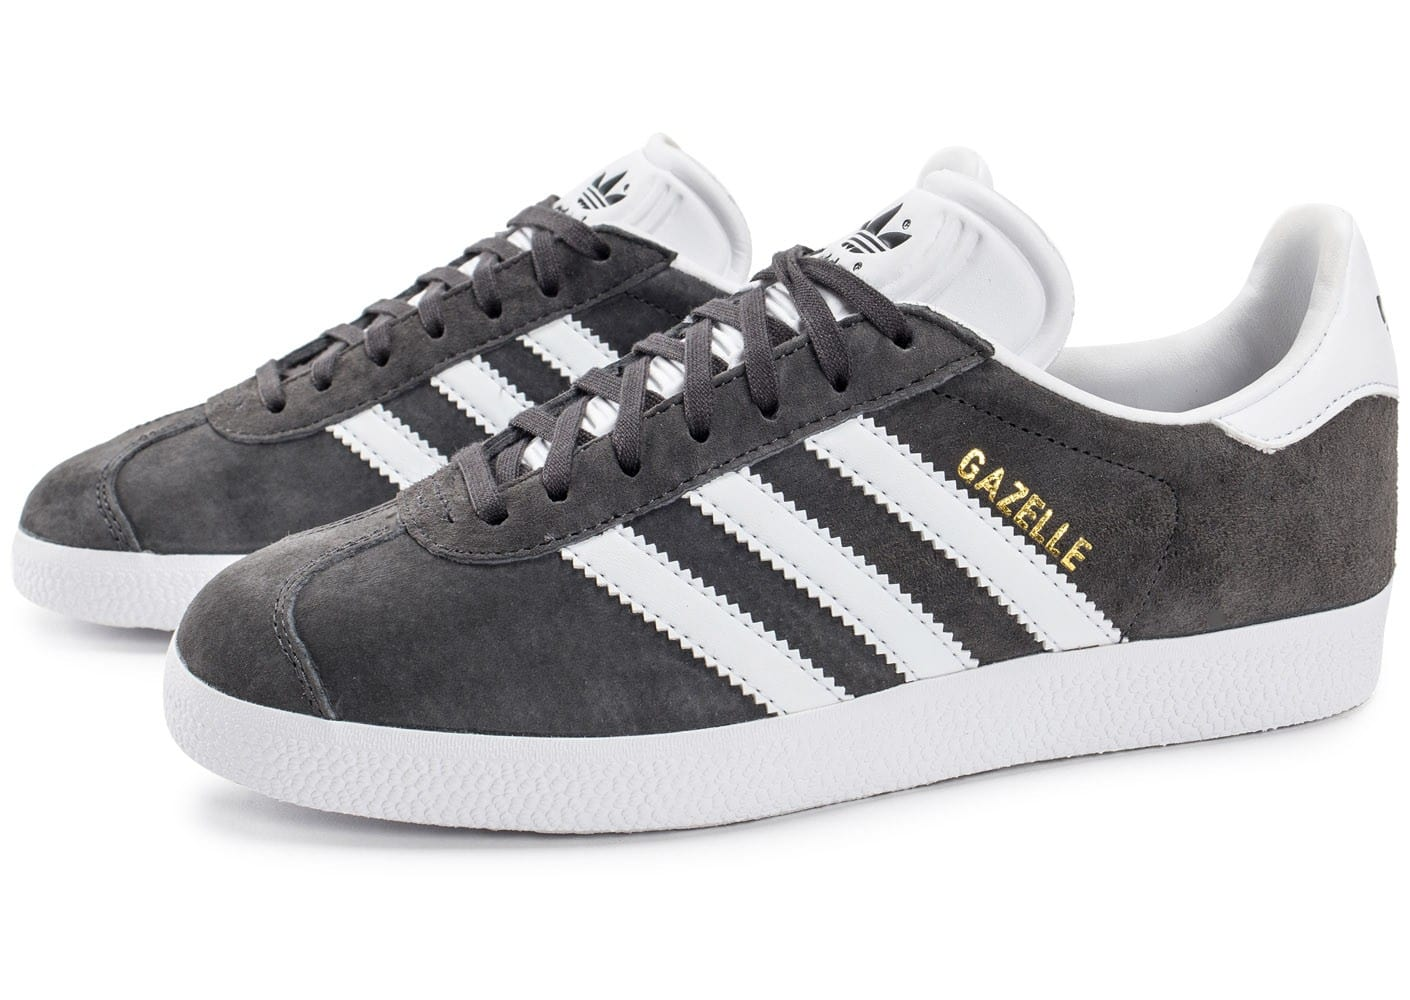 adidas Gazelle Grise | Boutique Officielle adidas